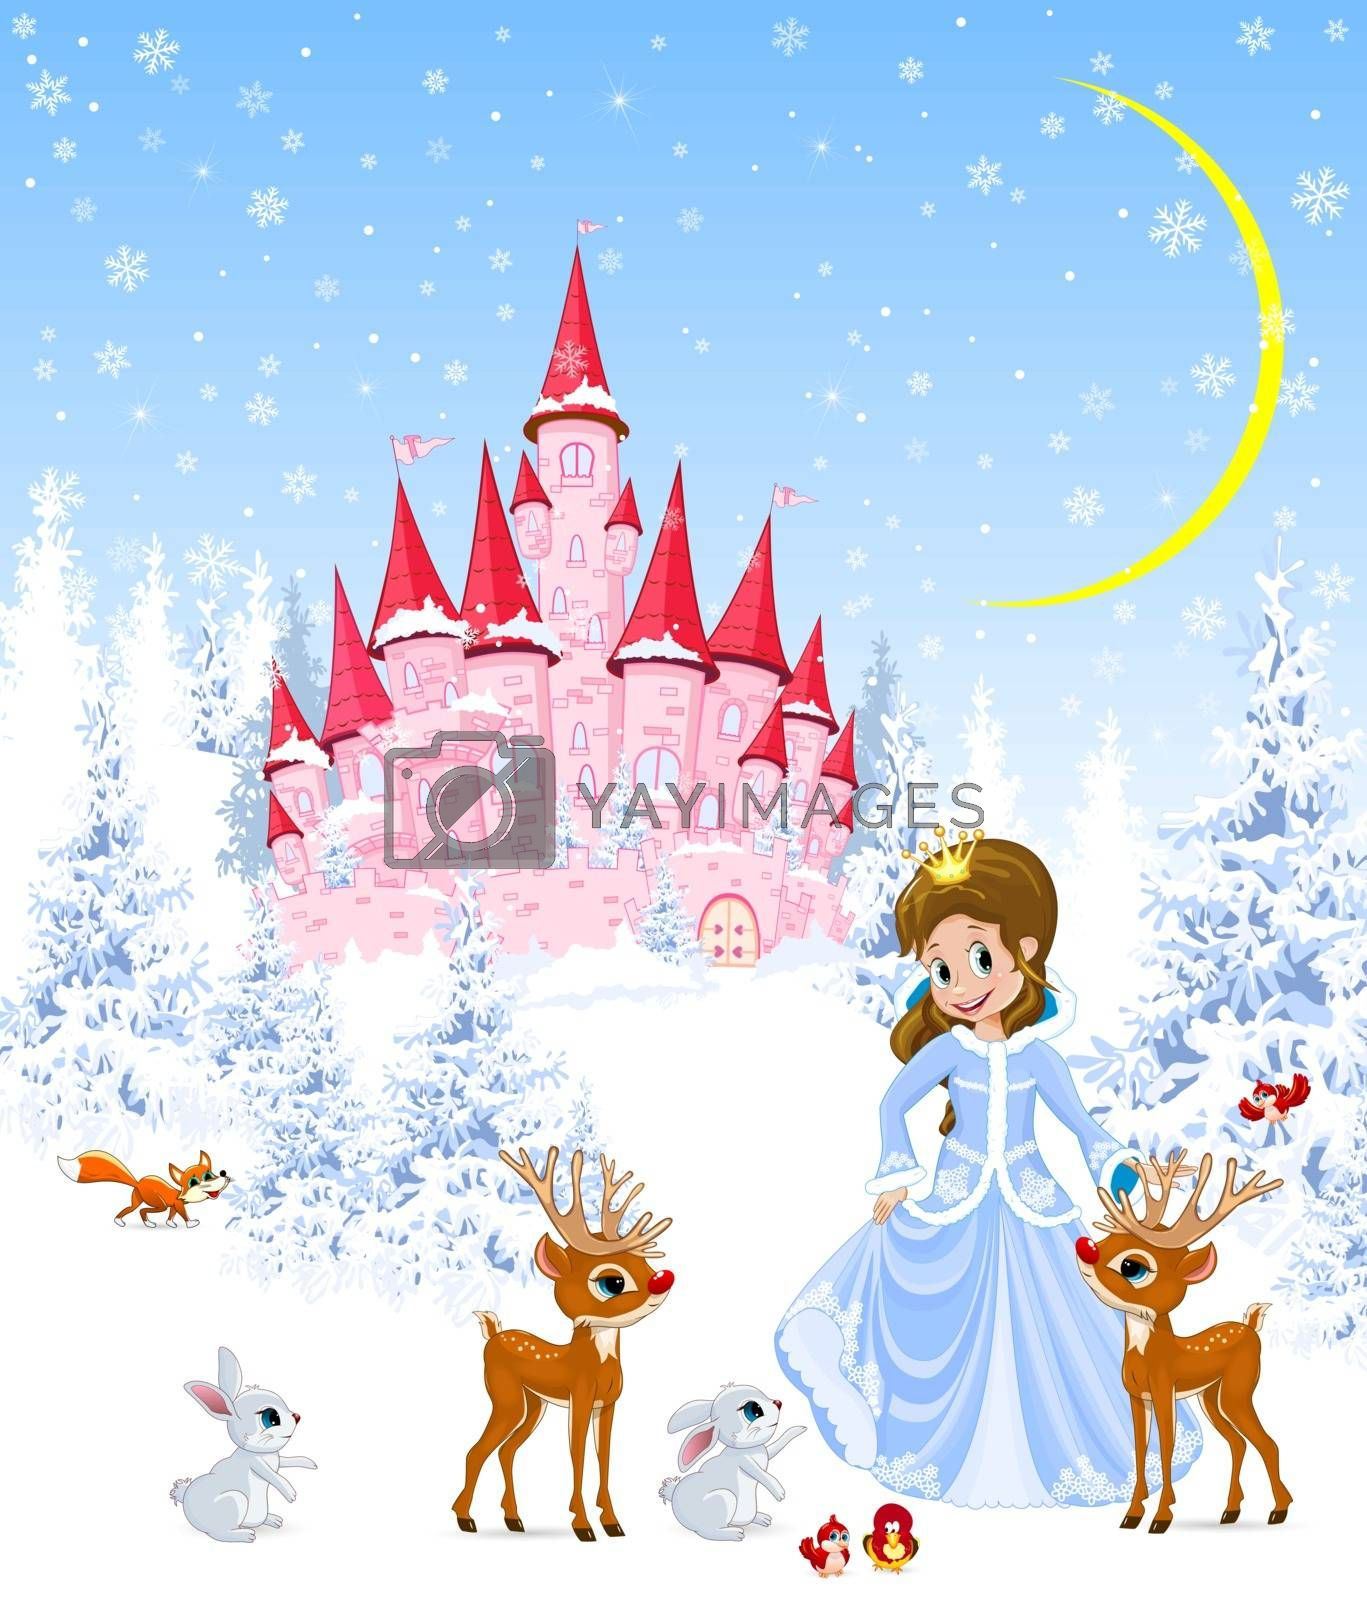 Princess on the background of a pink castle and winter forest. The princess is standing next to deer, bunnies and birds. Winter landscape.